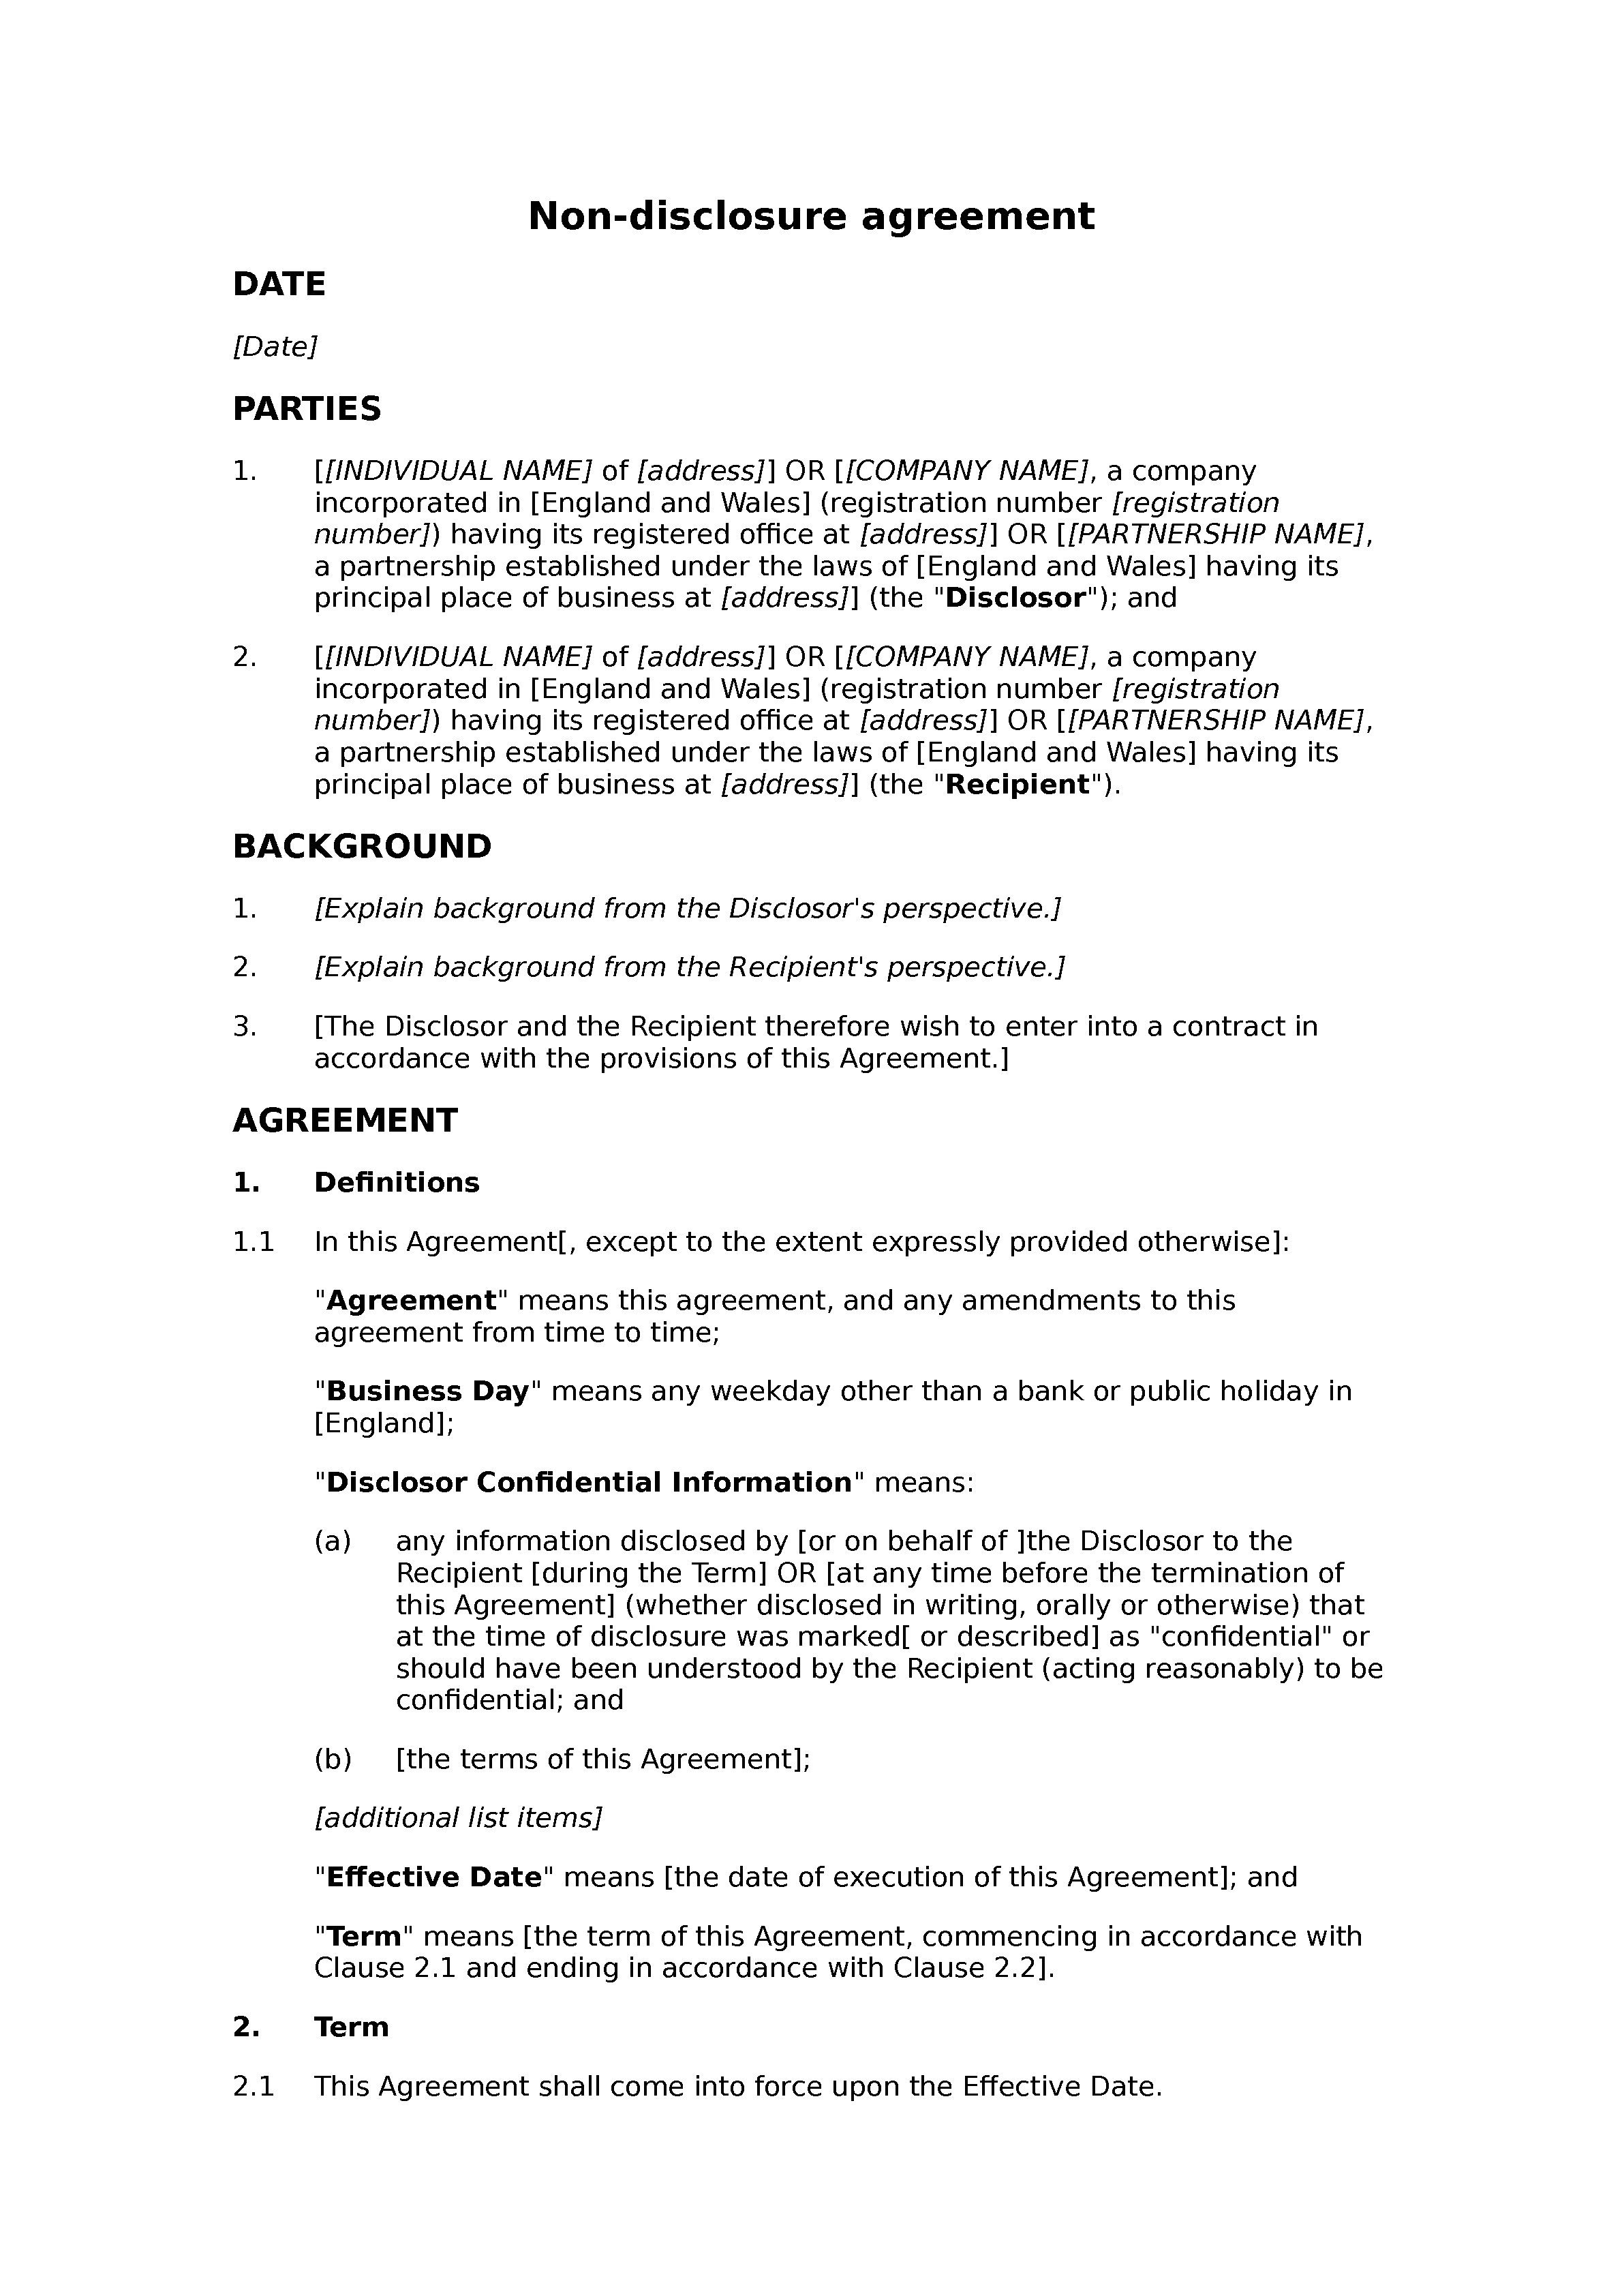 Non-disclosure agreement (unilateral, premium) document preview